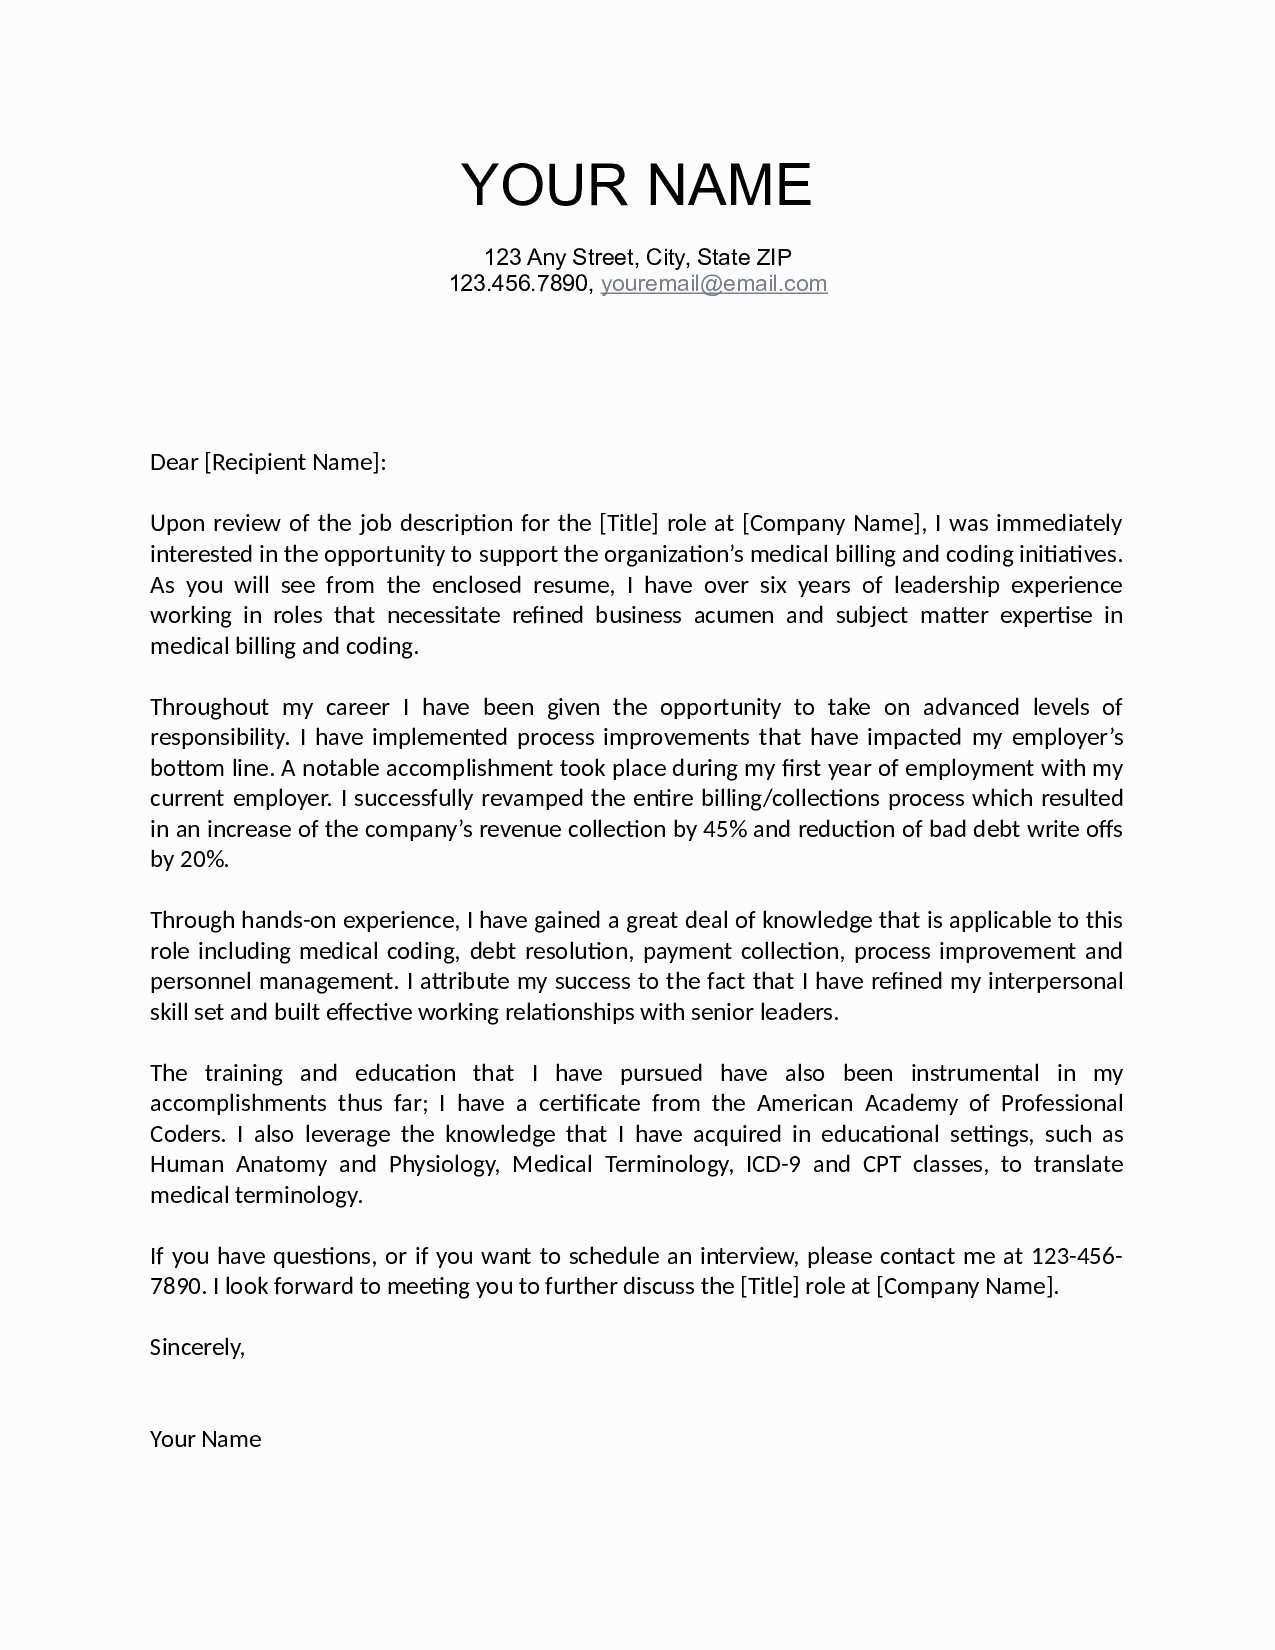 Theatre Cover Letter Template - Letter Resolution Template